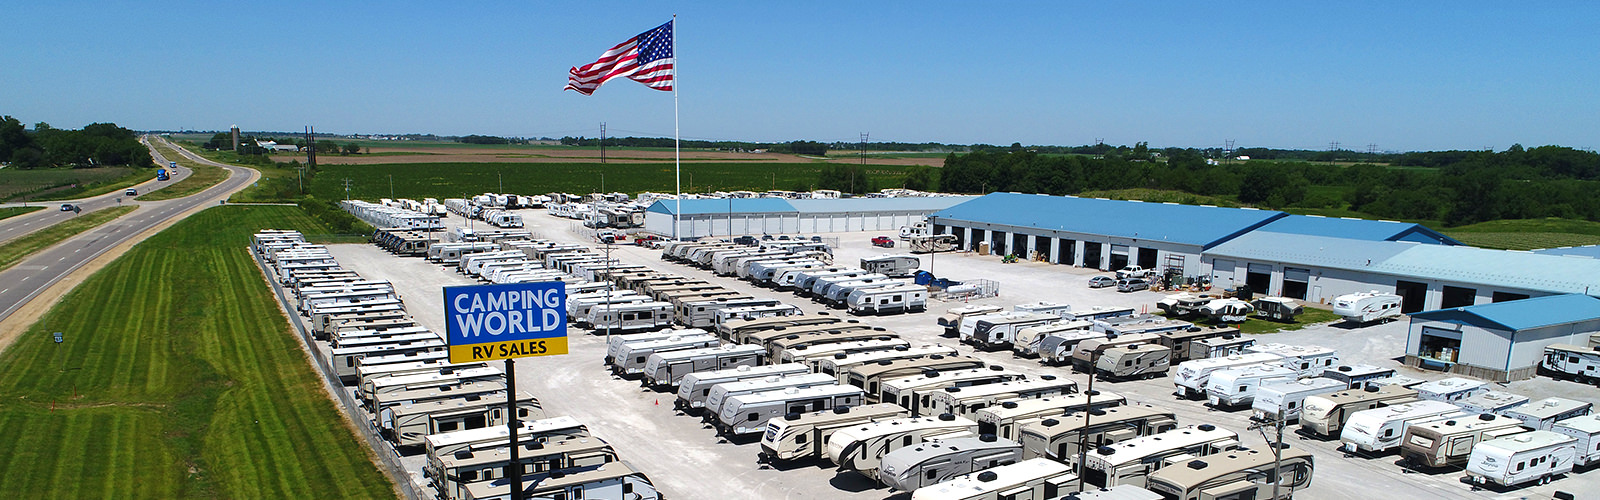 Camping World of Davenport IA